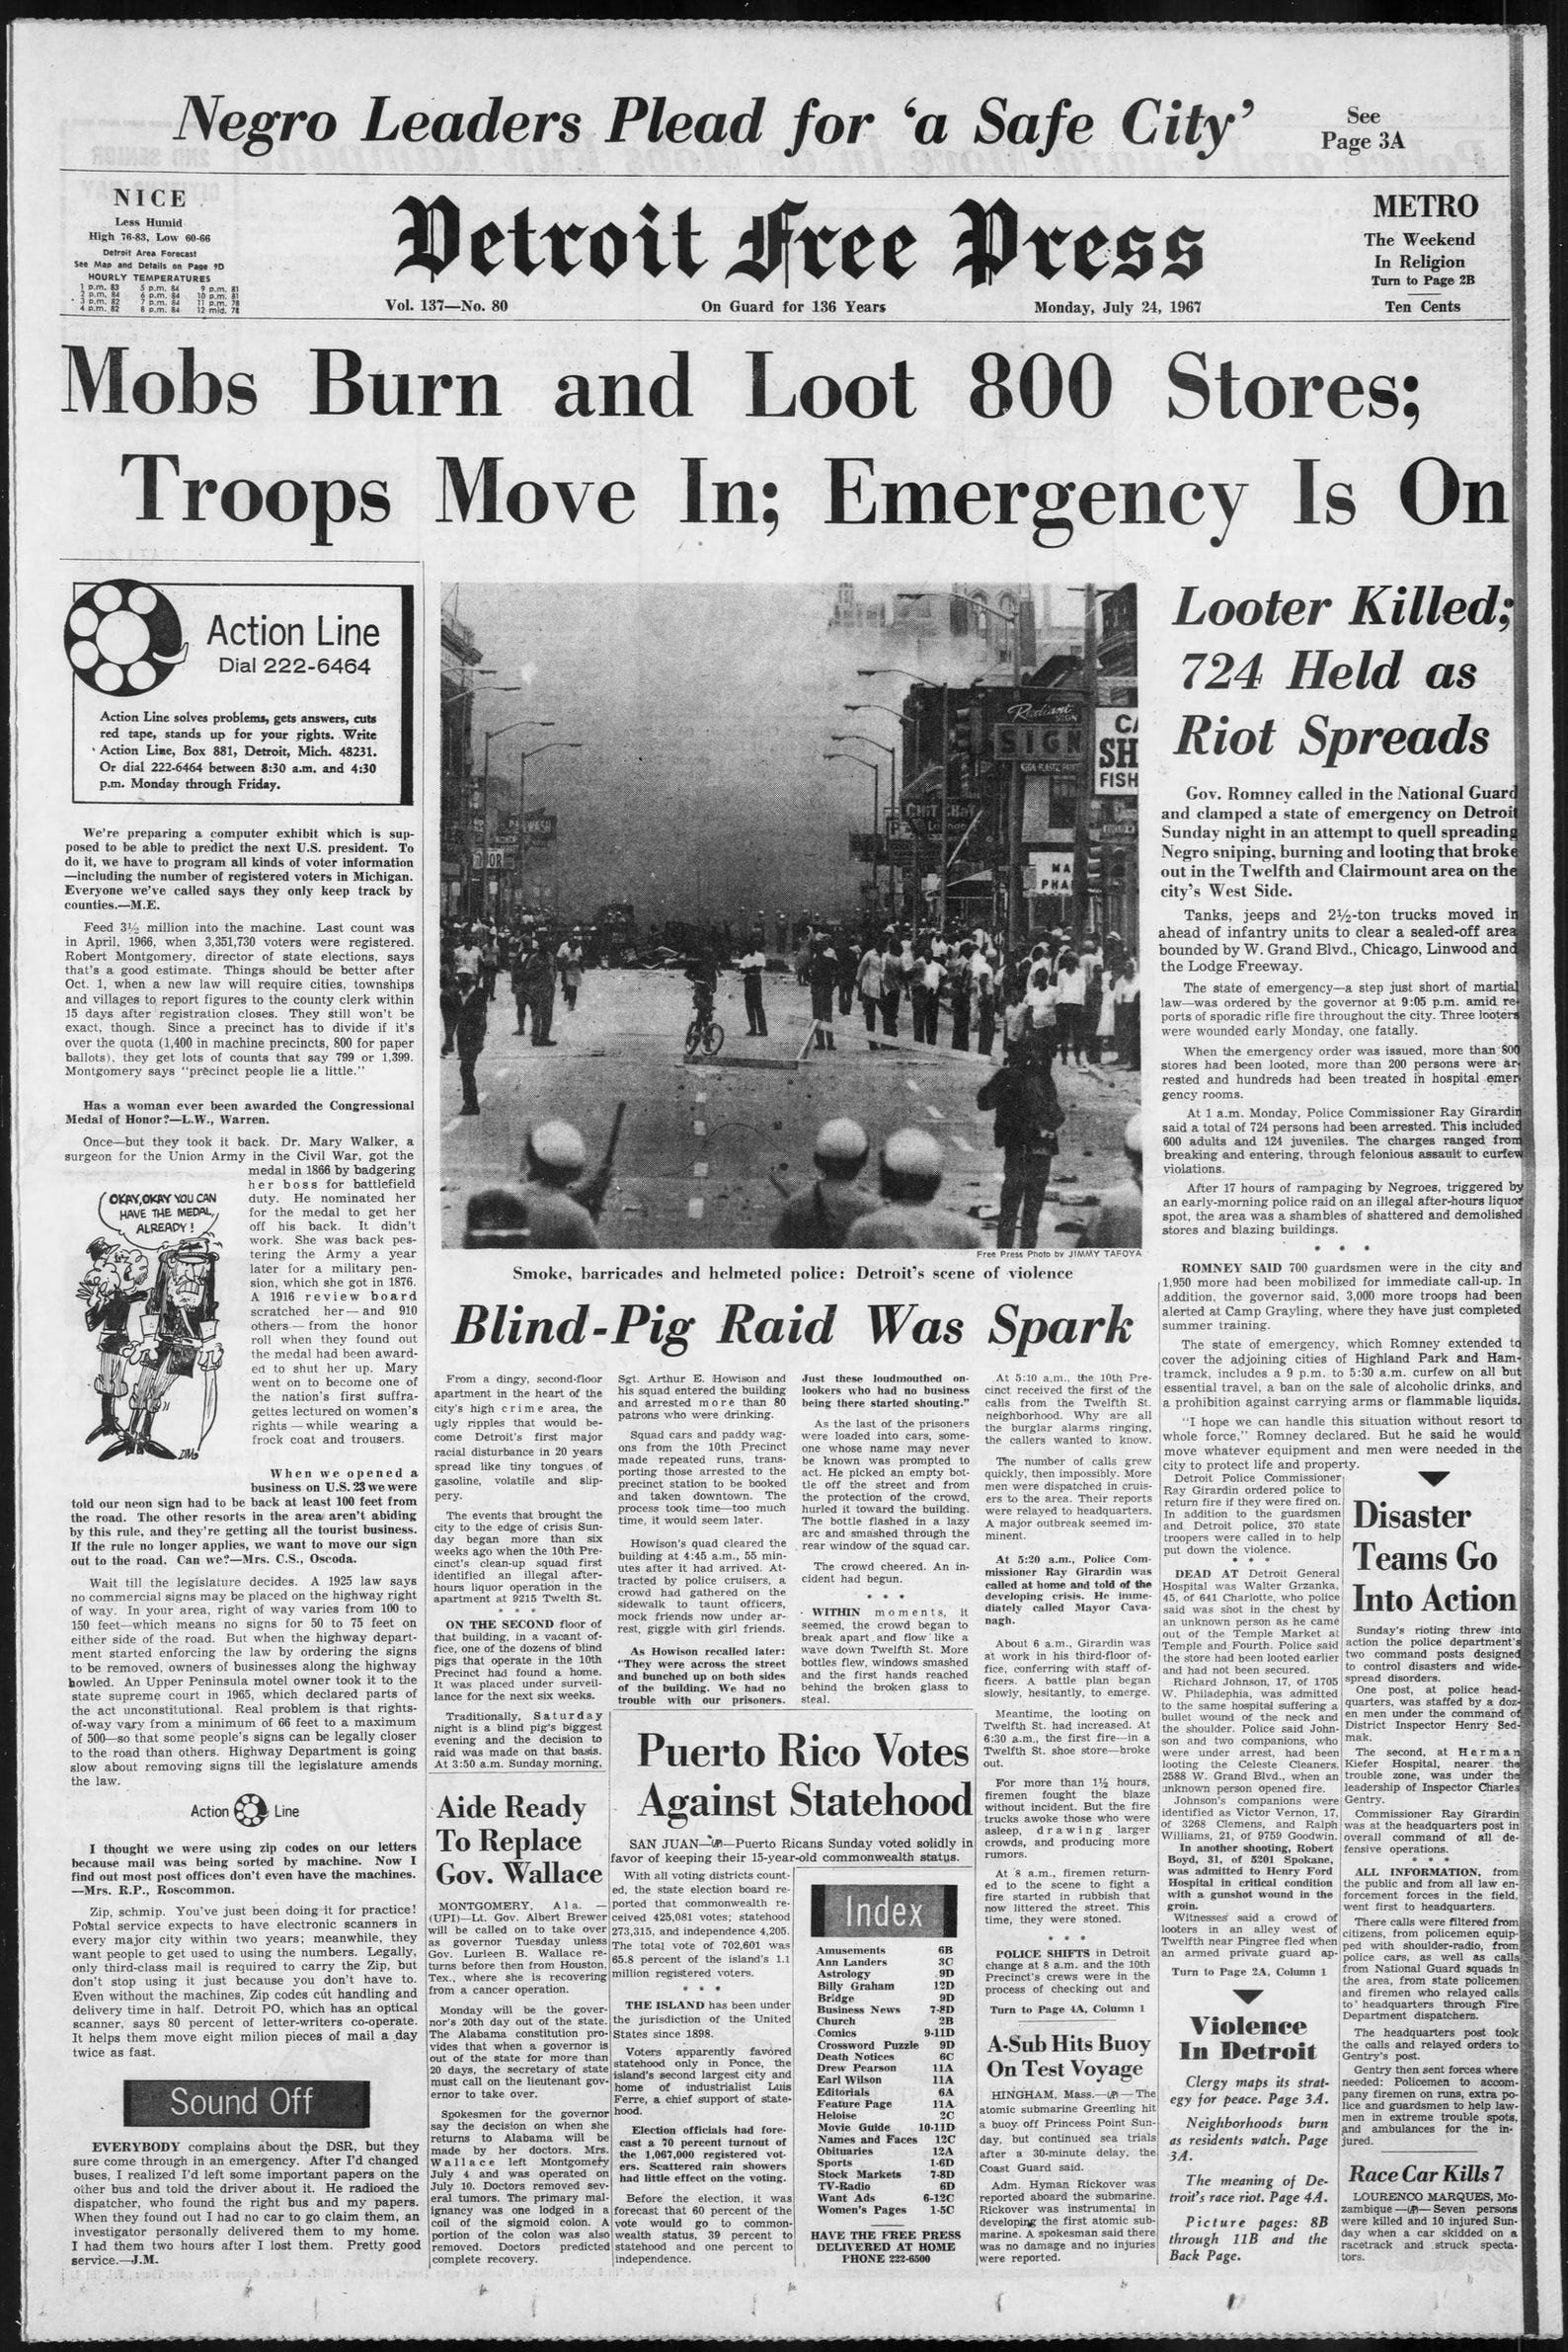 Detroit Free Press pages during the 1967 riots